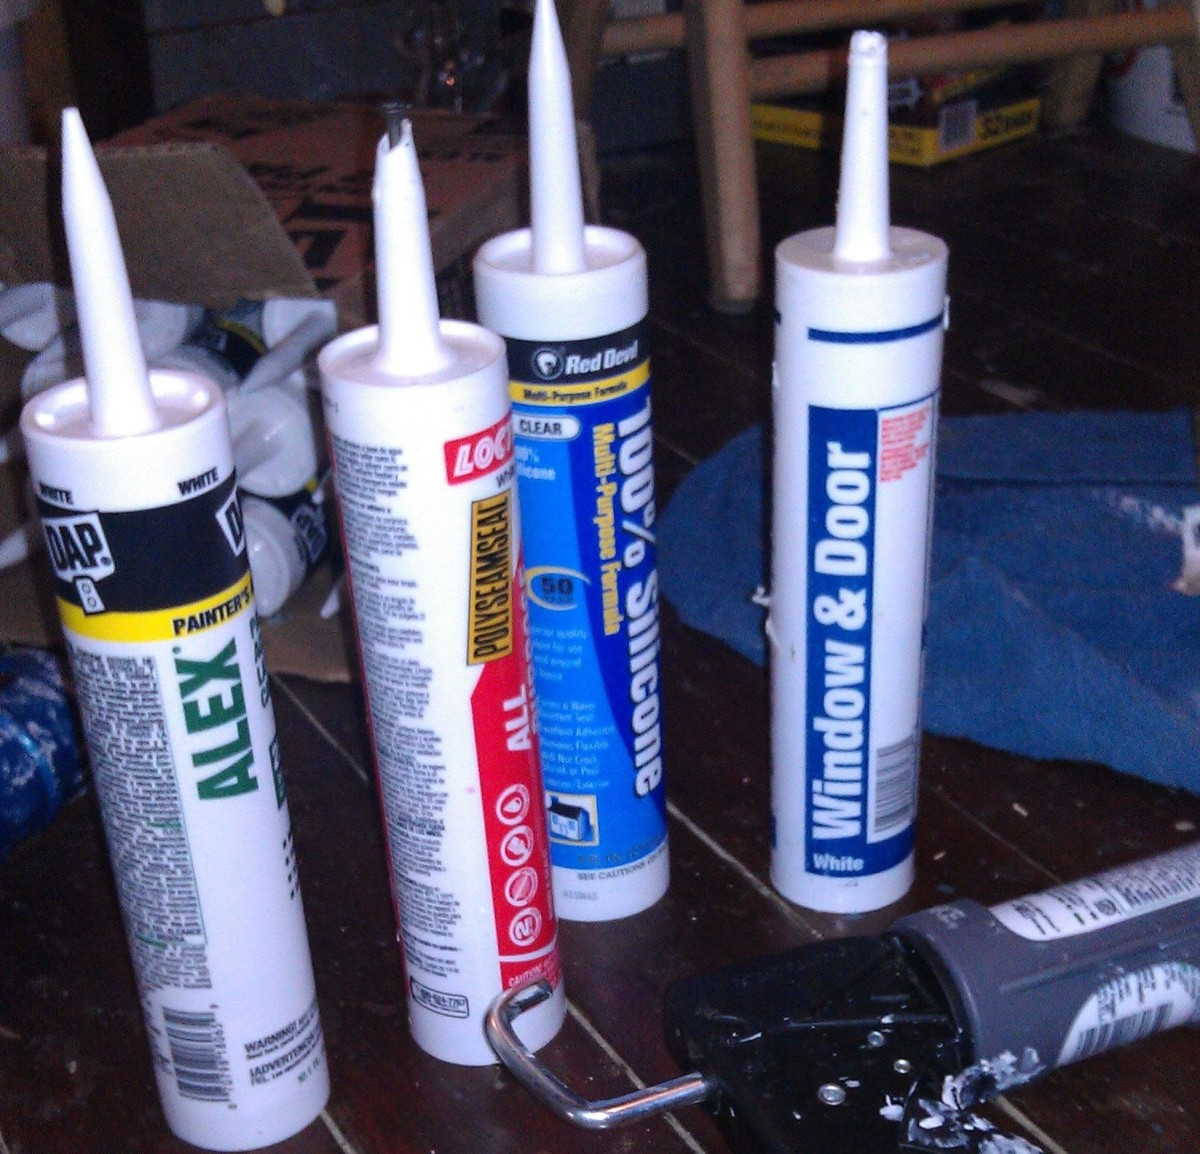 Instructional Caulking/Sealing Guide to Keep Bed Bugs From Getting Into Walls, Baseboards, and Outlets